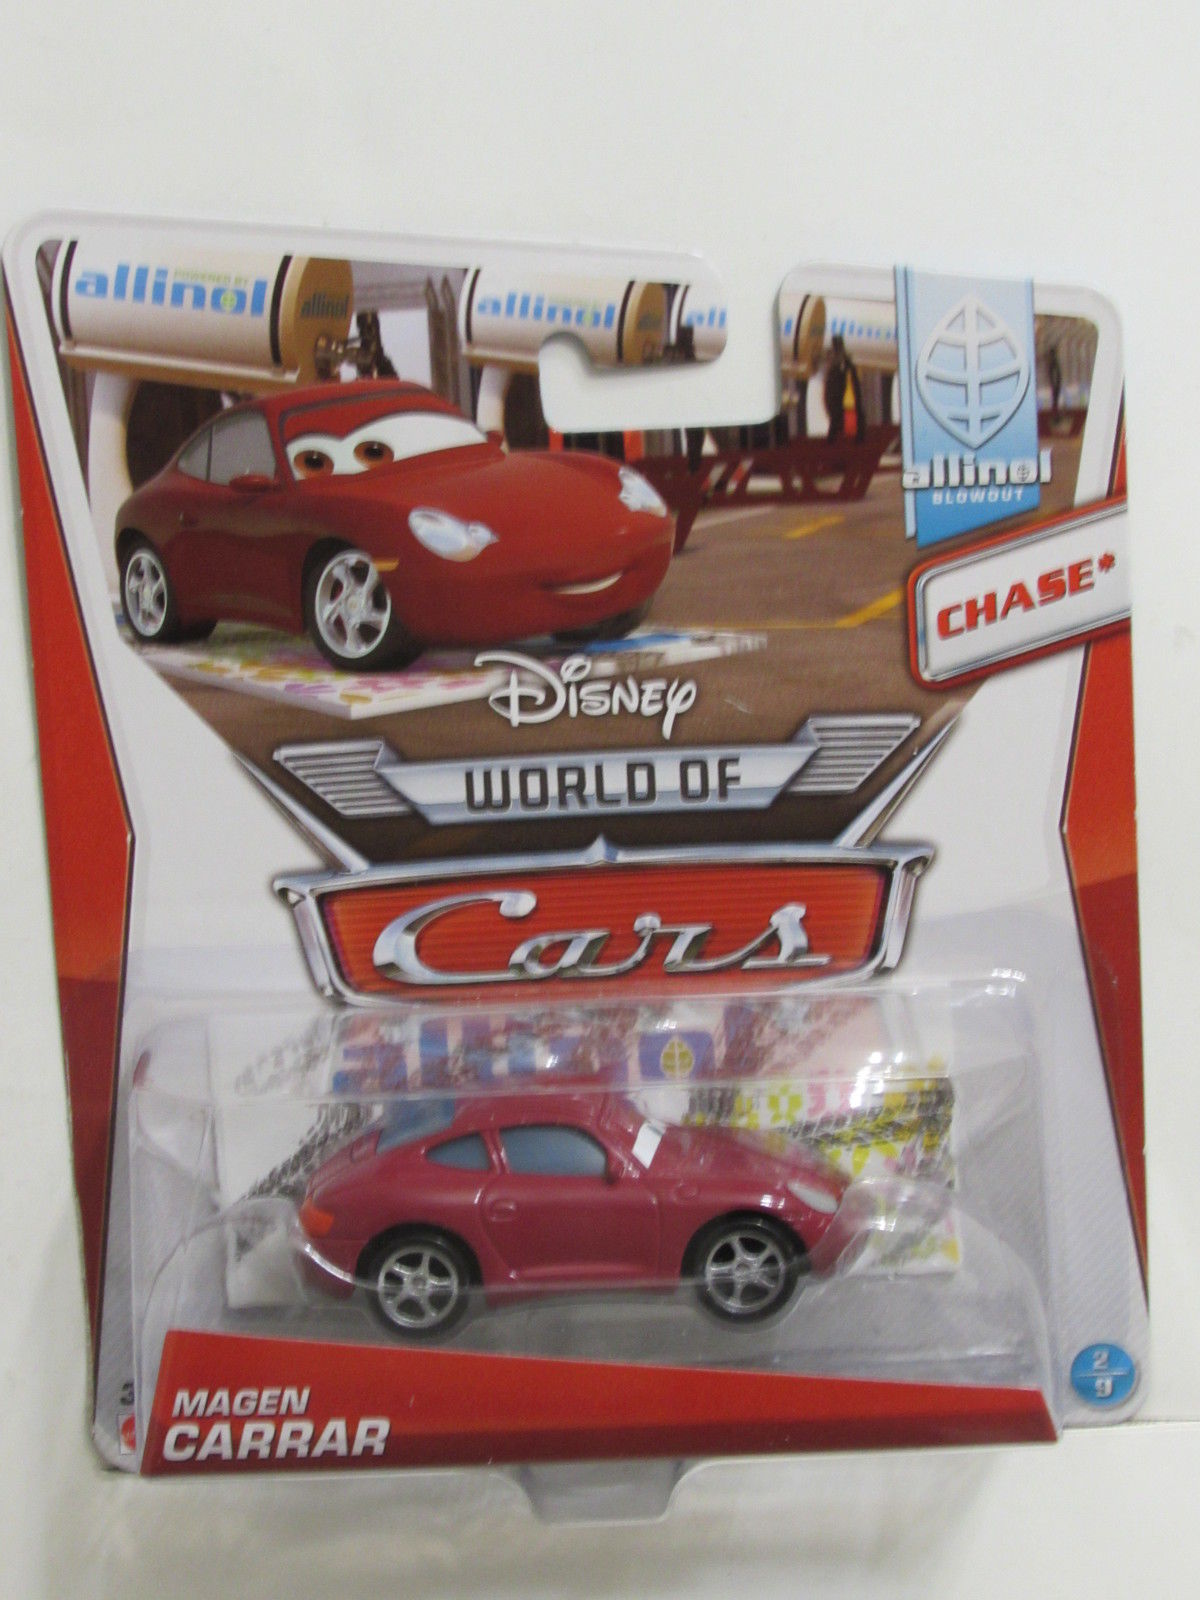 DISNEY PIXAR CARS WORLD OF CARS ALLINOL BLOWOUT MAGEN CARRAR CHASE